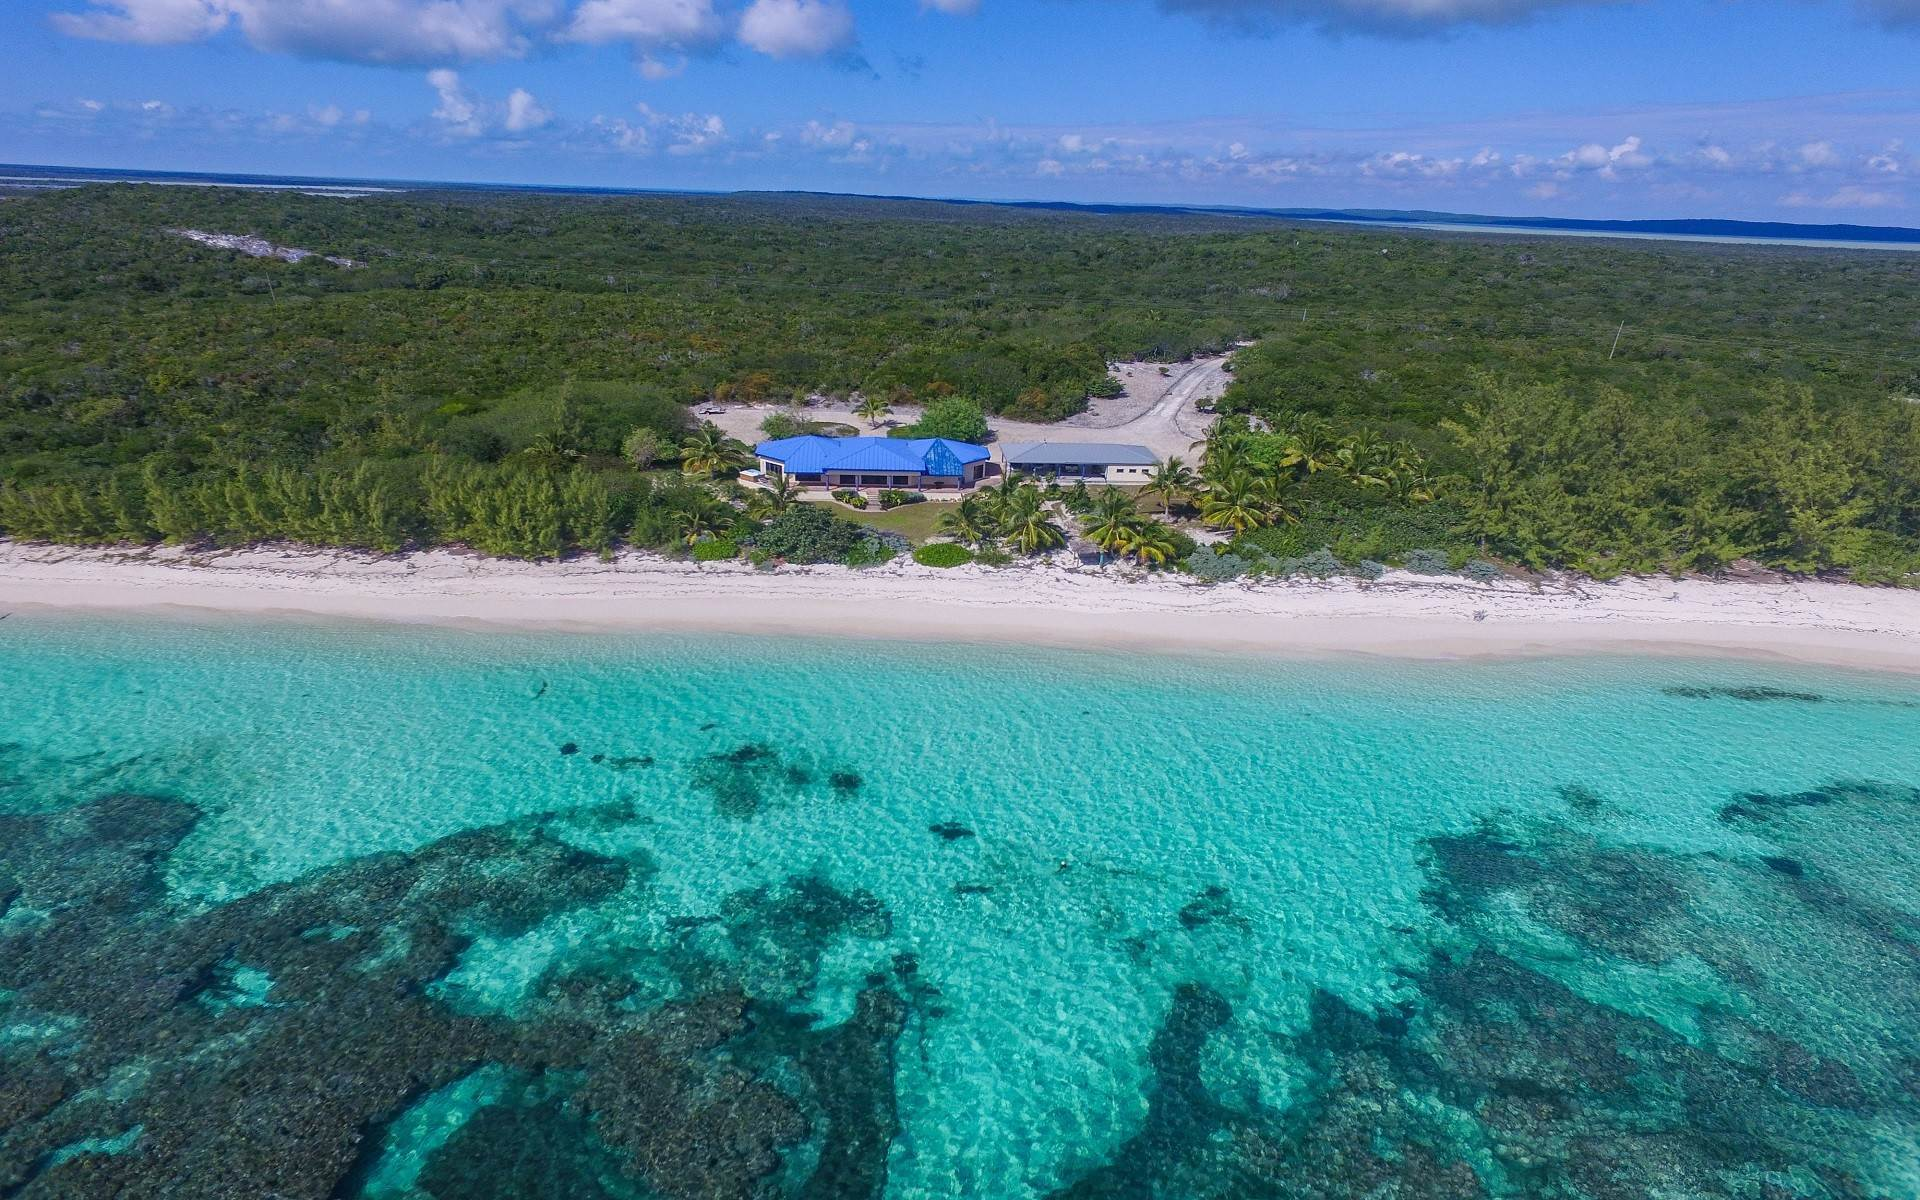 Single Family Homes for Sale at Charming beachfront house on 3.8 acres in South Cat Island - MLS 43585 Port Howe, Cat Island, Bahamas